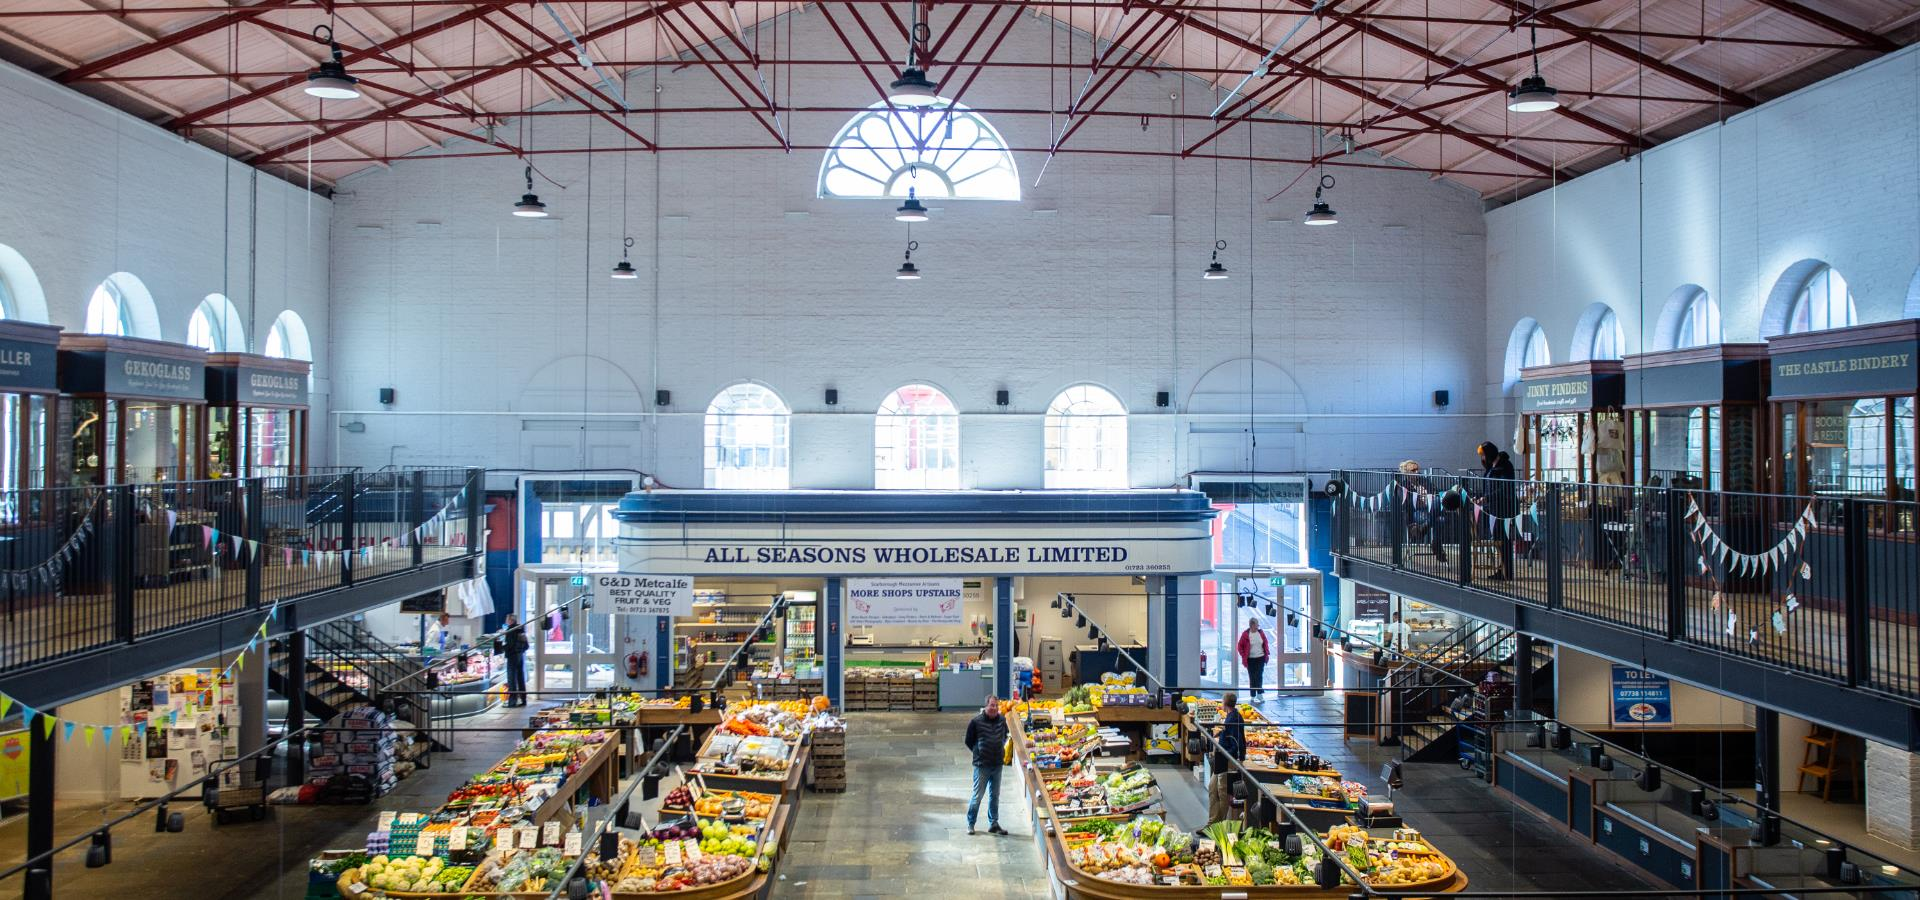 An image of the Interior of Scarborough Market Hall